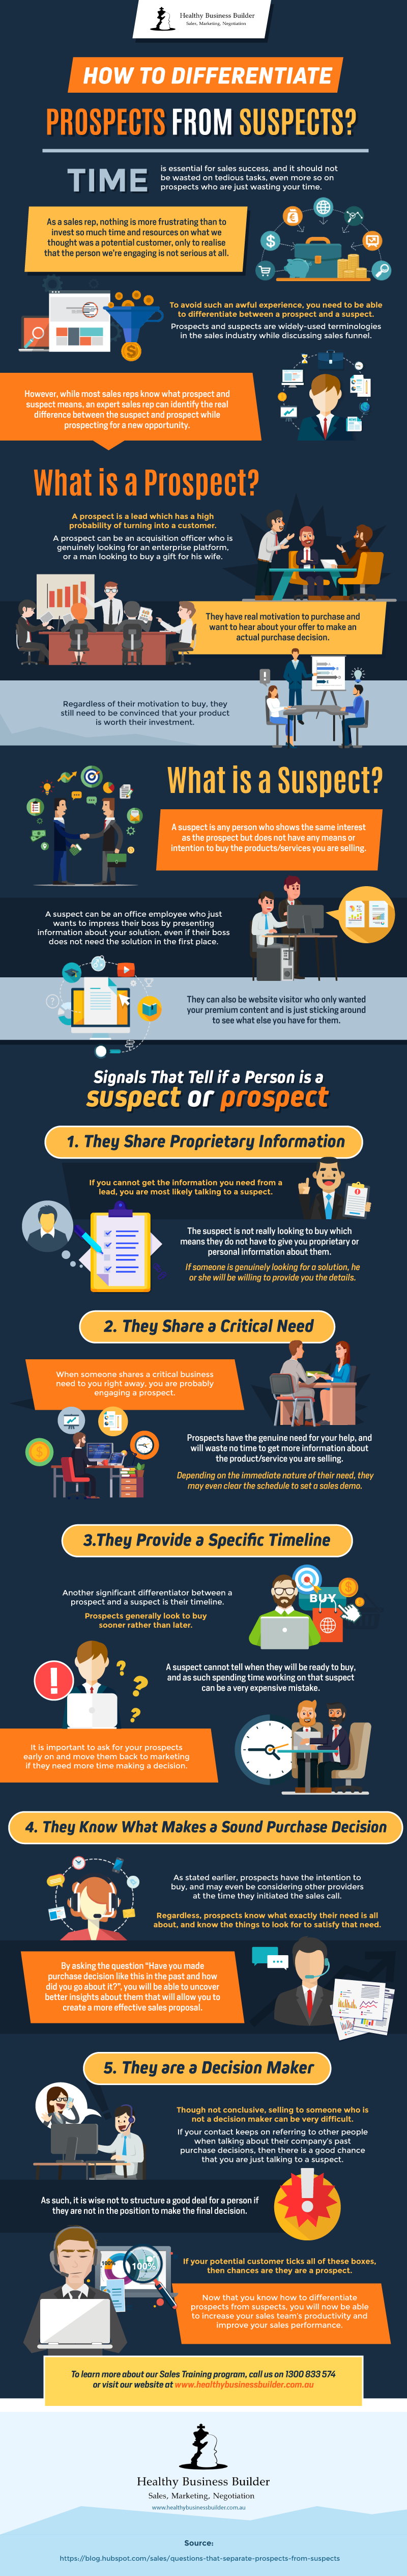 How to Differentiate Prospects from Suspects?